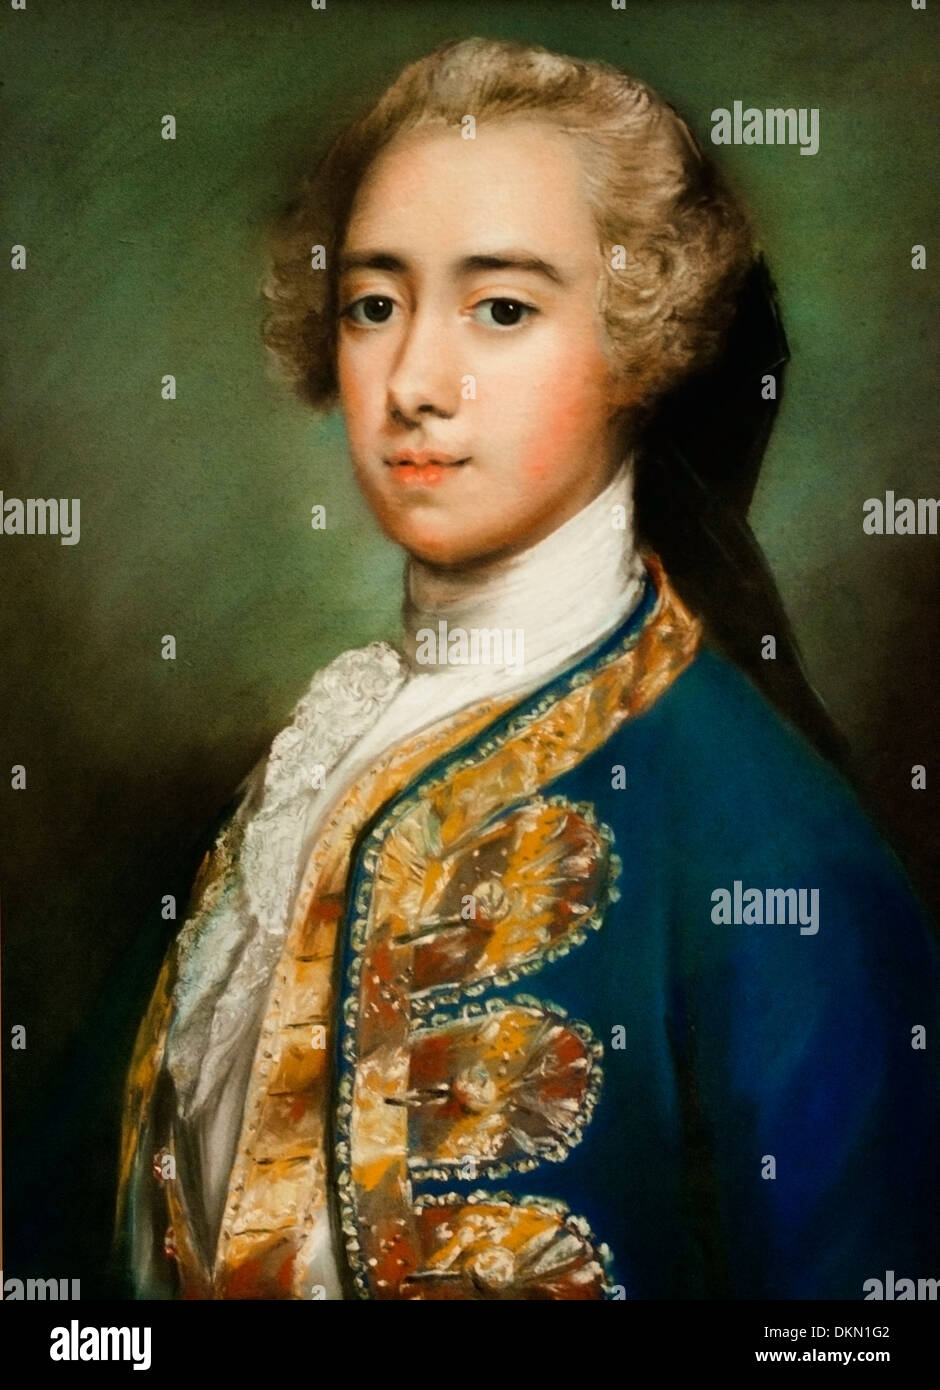 Lord St Georg 1715 1775 by Rosalba Carriera 1675 1757 Venetian Stock     Lord St Georg 1715 1775 by Rosalba Carriera 1675 1757 Venetian Rococo  painter Italian Italy